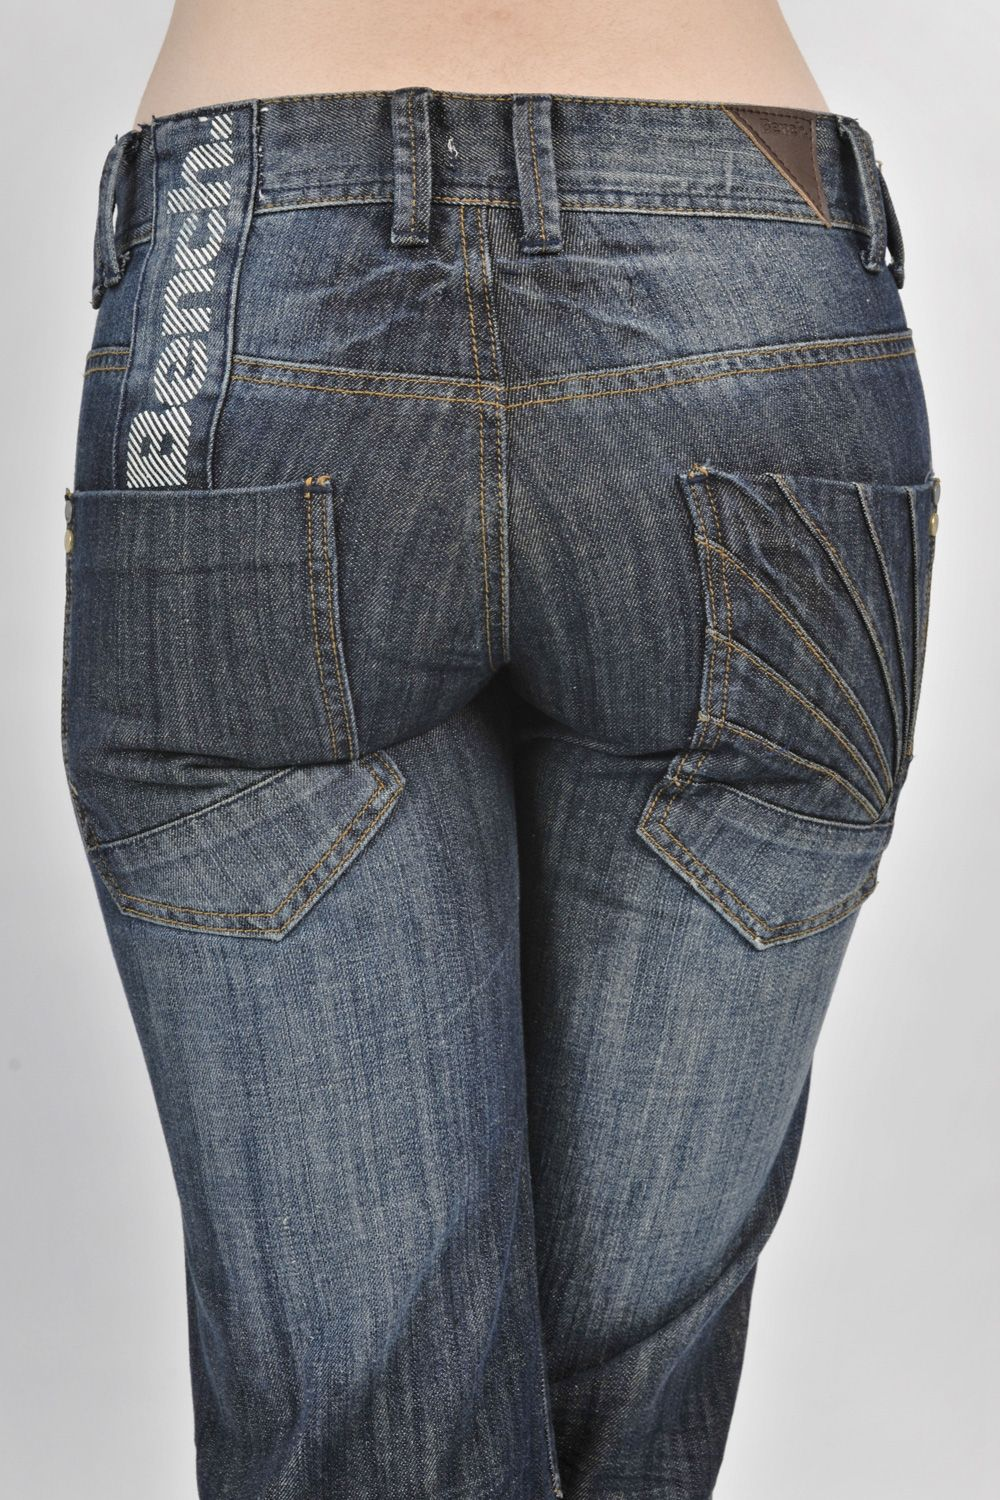 Love Bench jeans